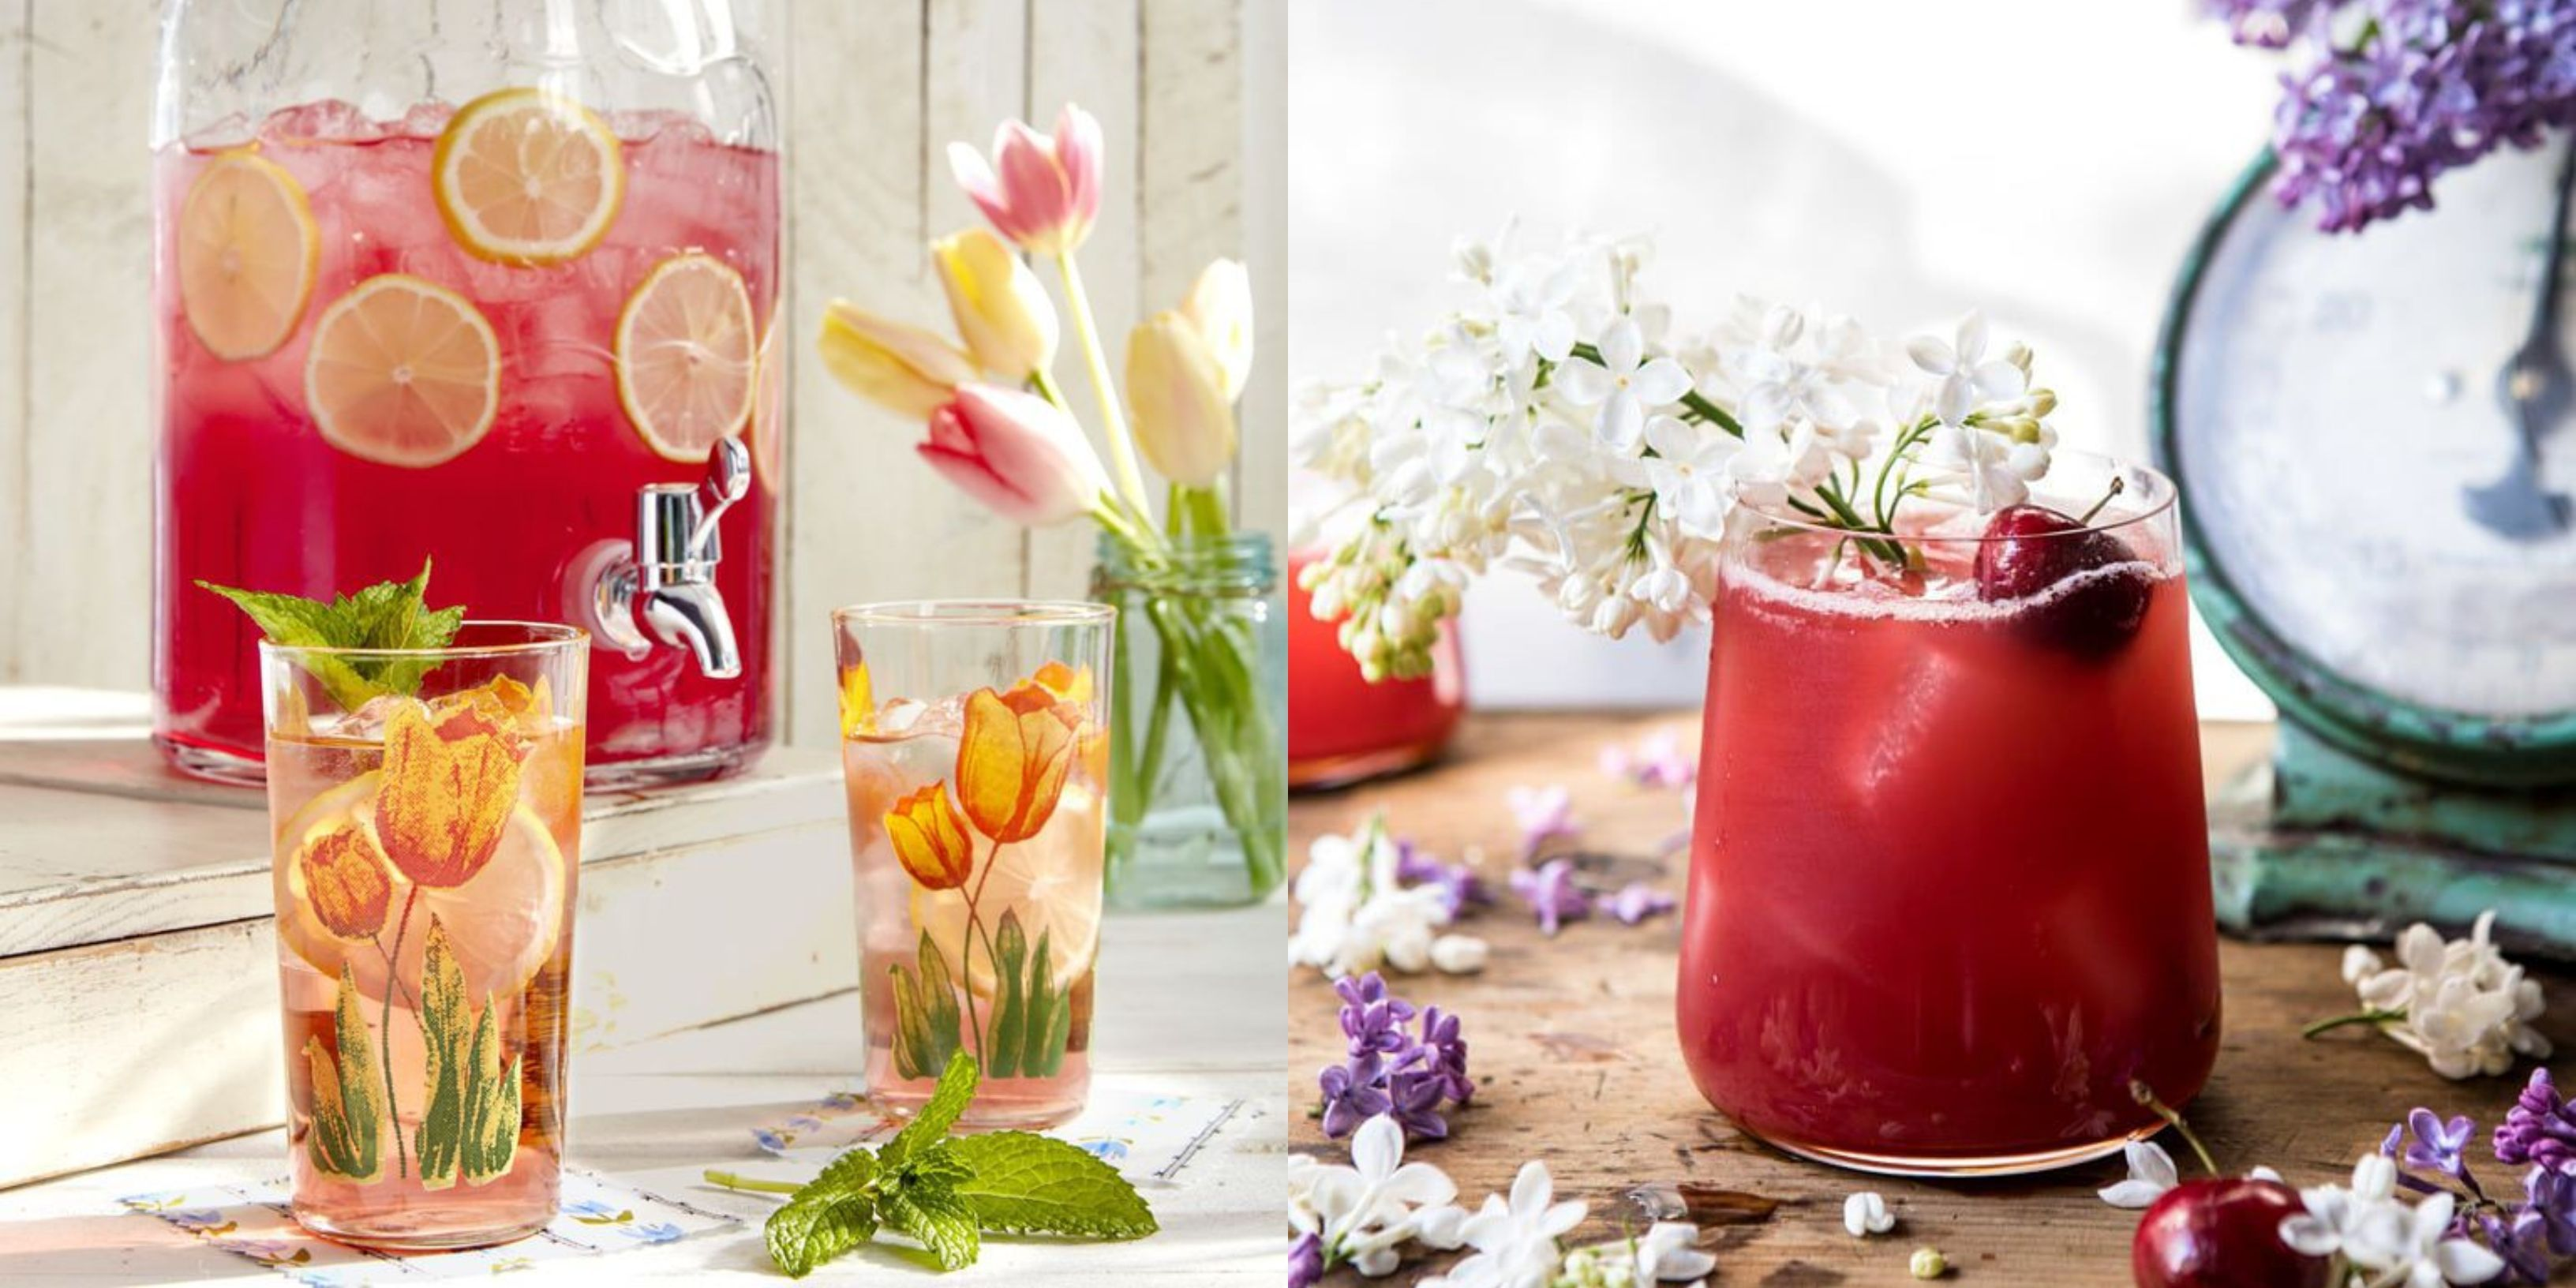 30 Easter Cocktails to Complete Your Holiday Brunch Menu